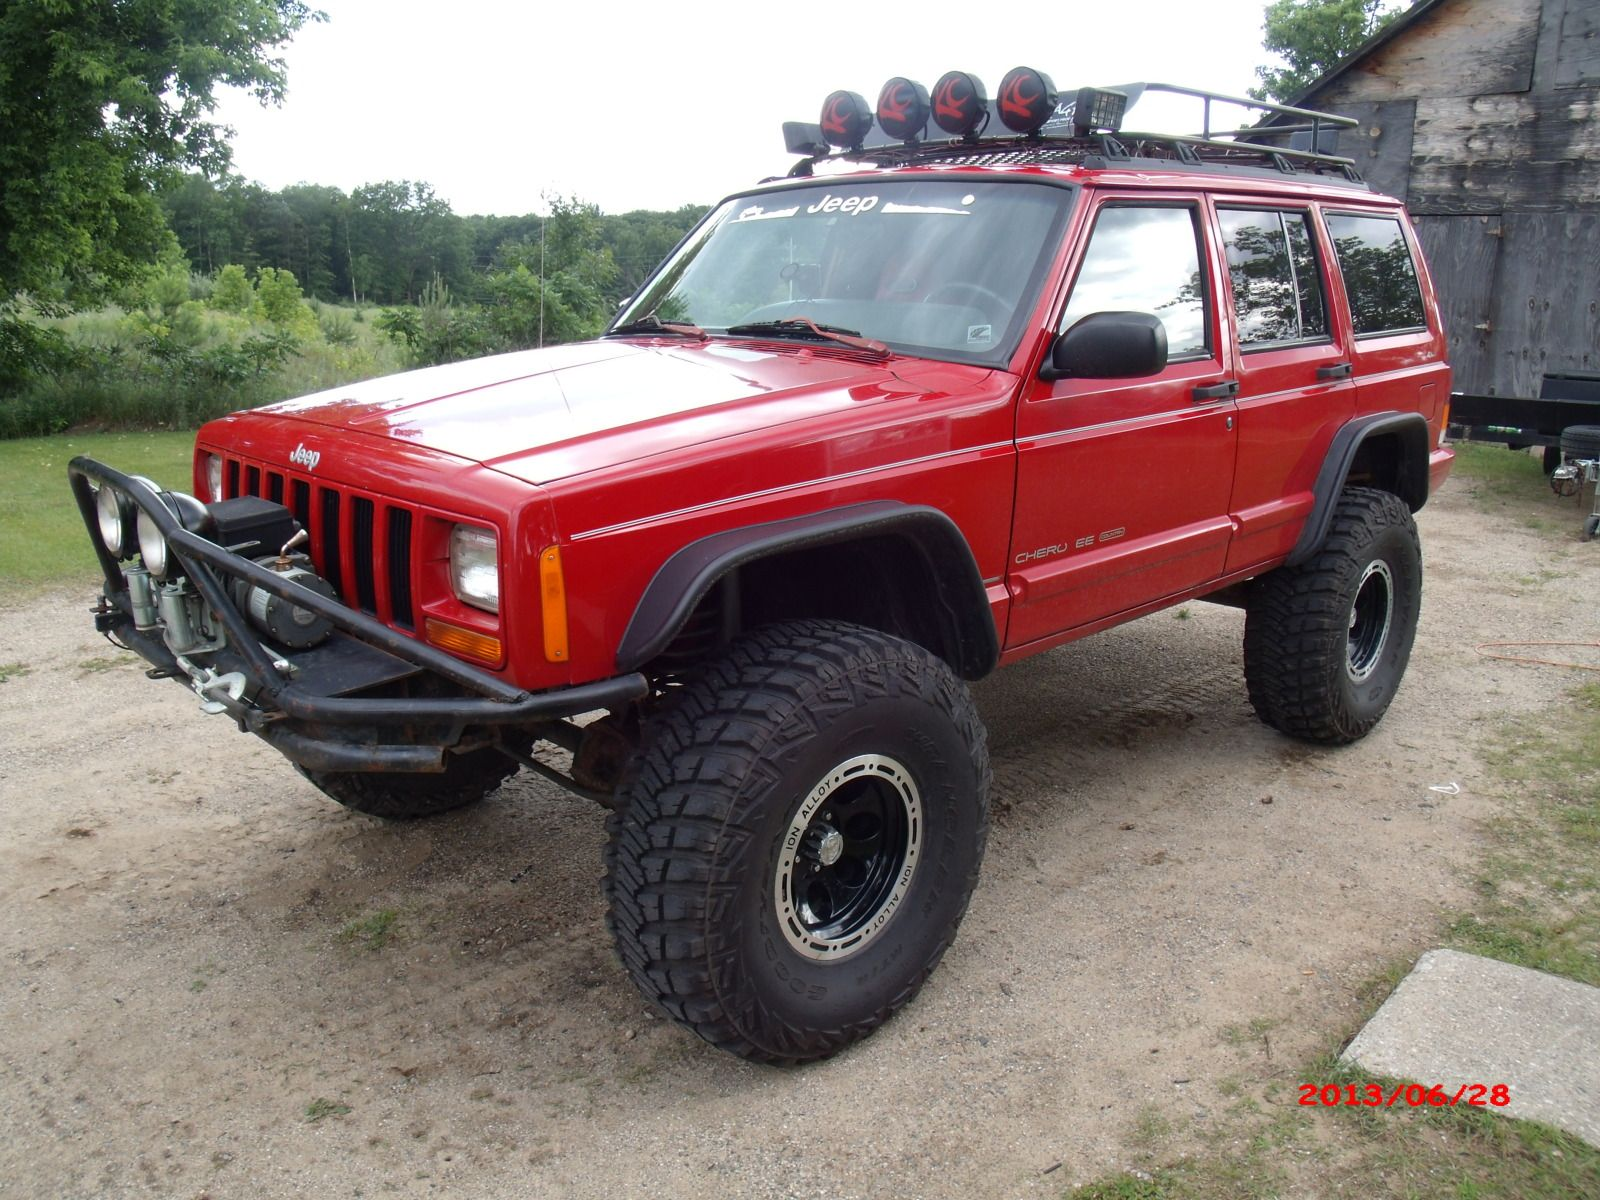 Migrated Over From Yj To Xj Jeep Cherokee Forum Jeep Xj Mods Jeep Xj Jeep